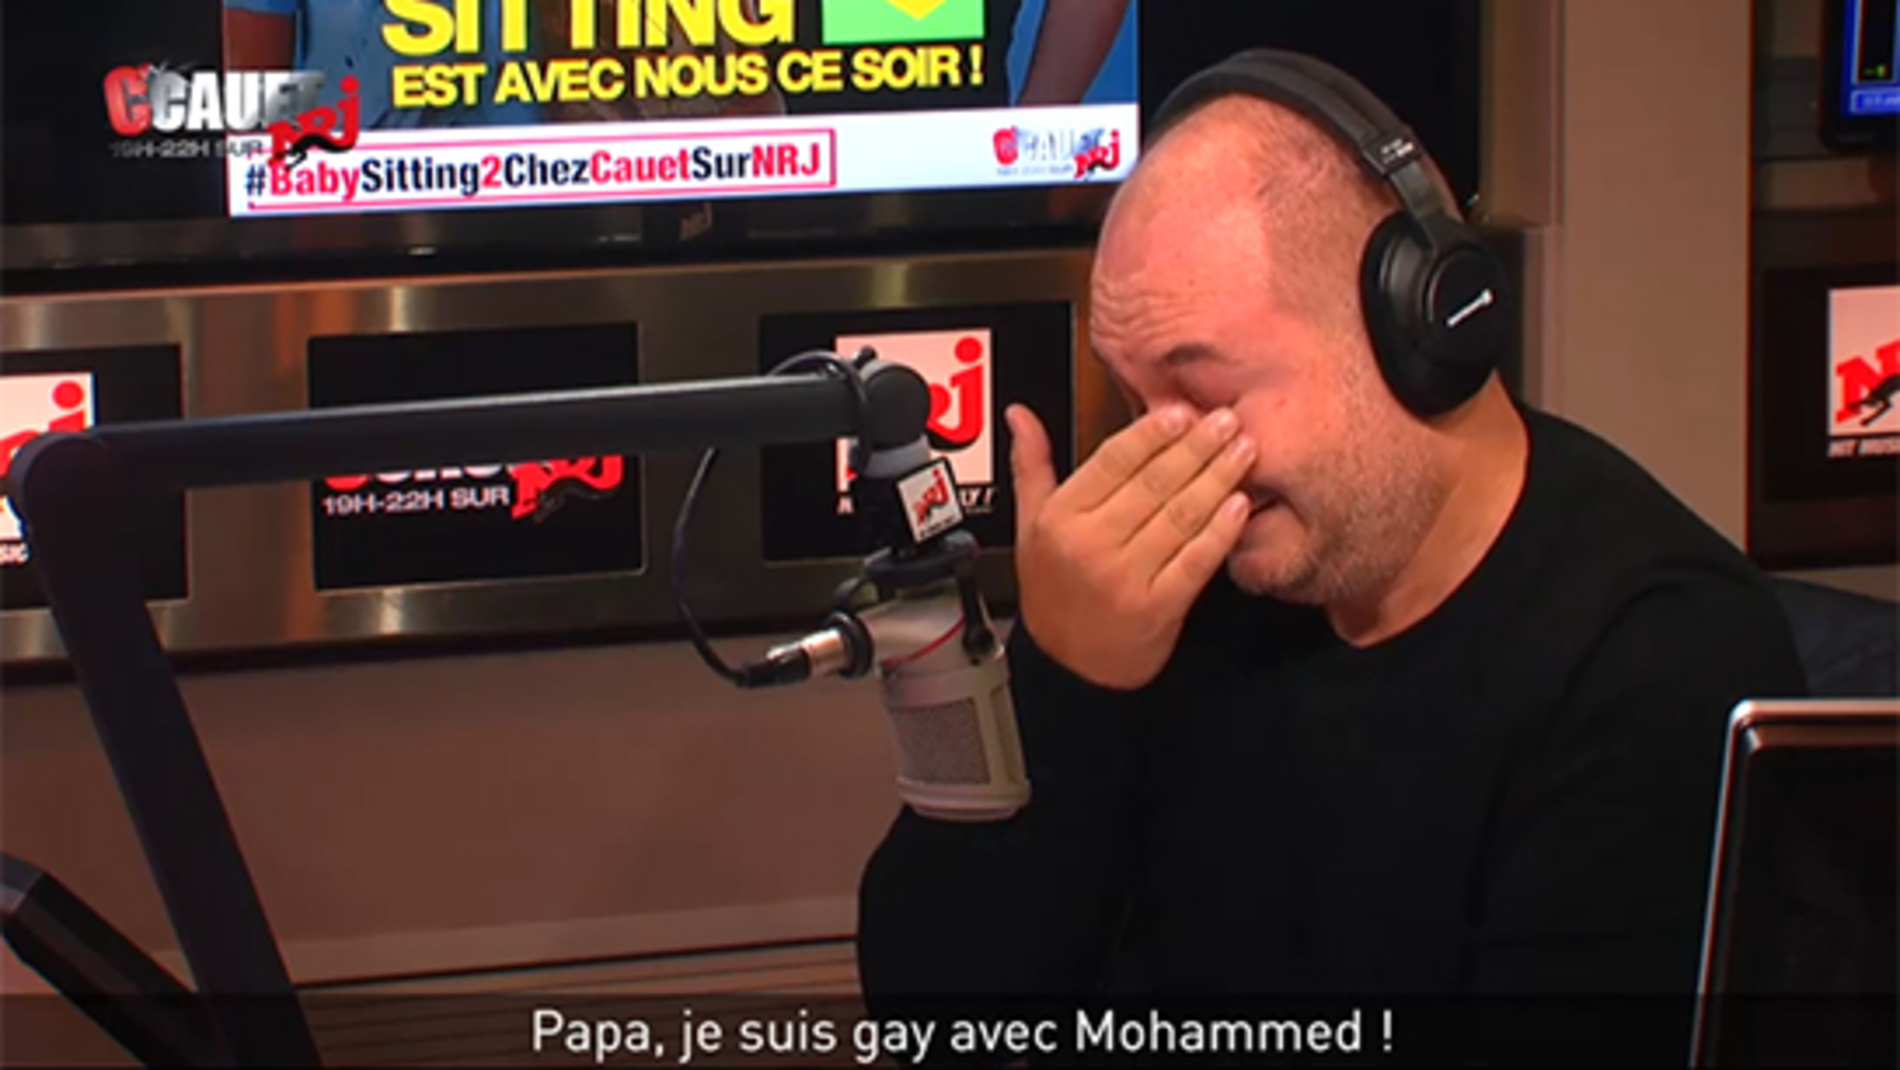 Papa, je suis gay avec Mohammed